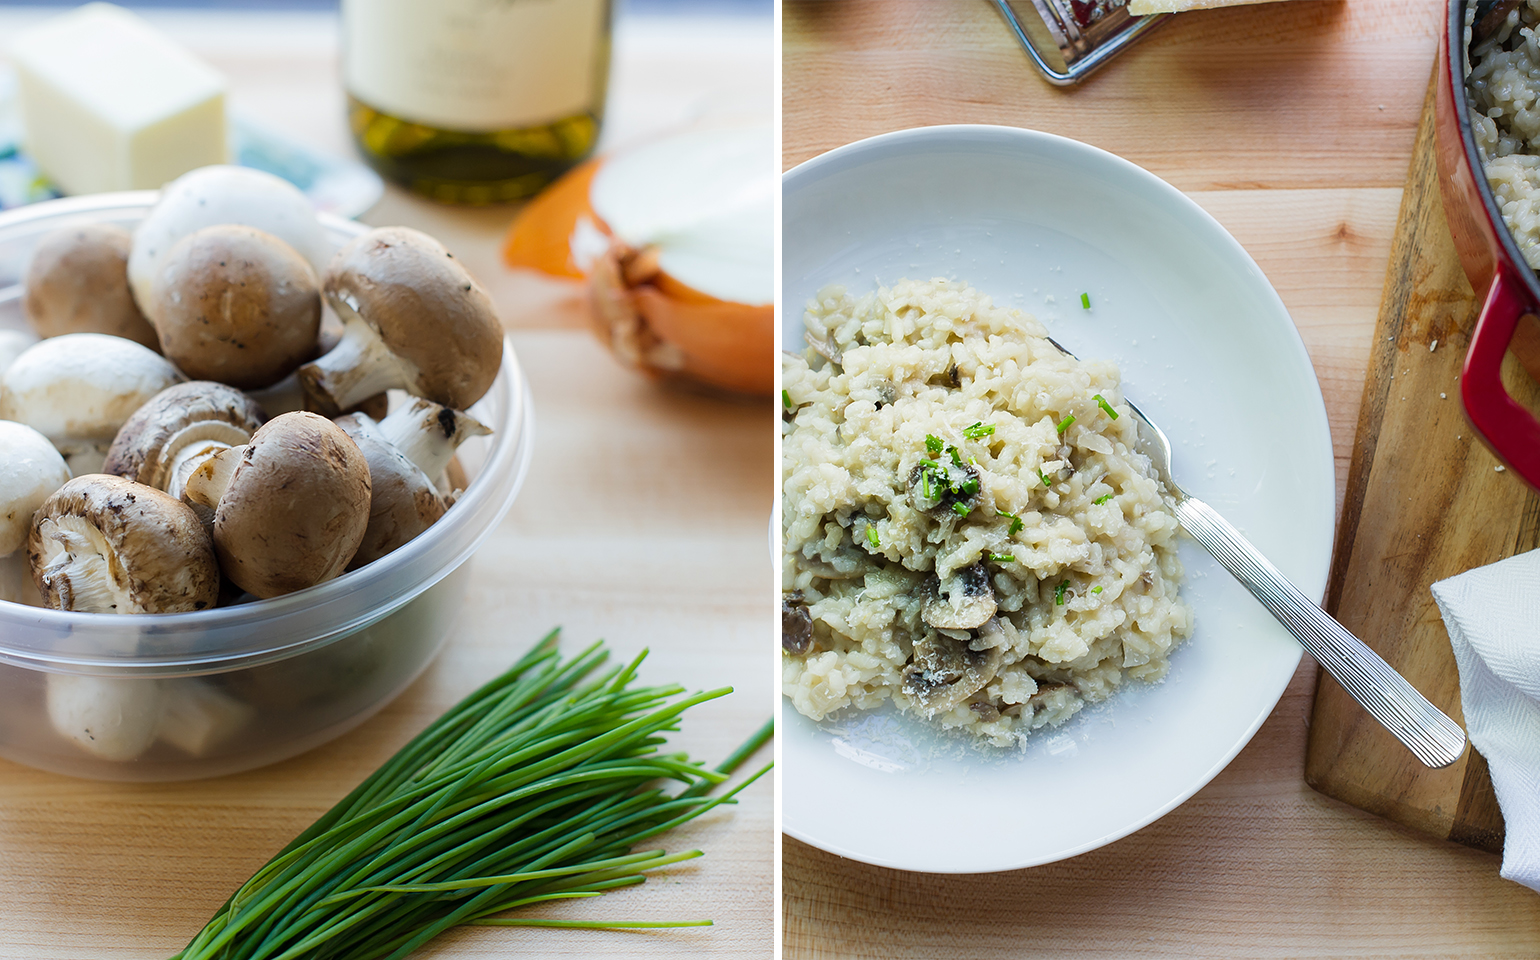 Lunchovers: Risotto for Dinner, Stuffed Potatoes for Lunch